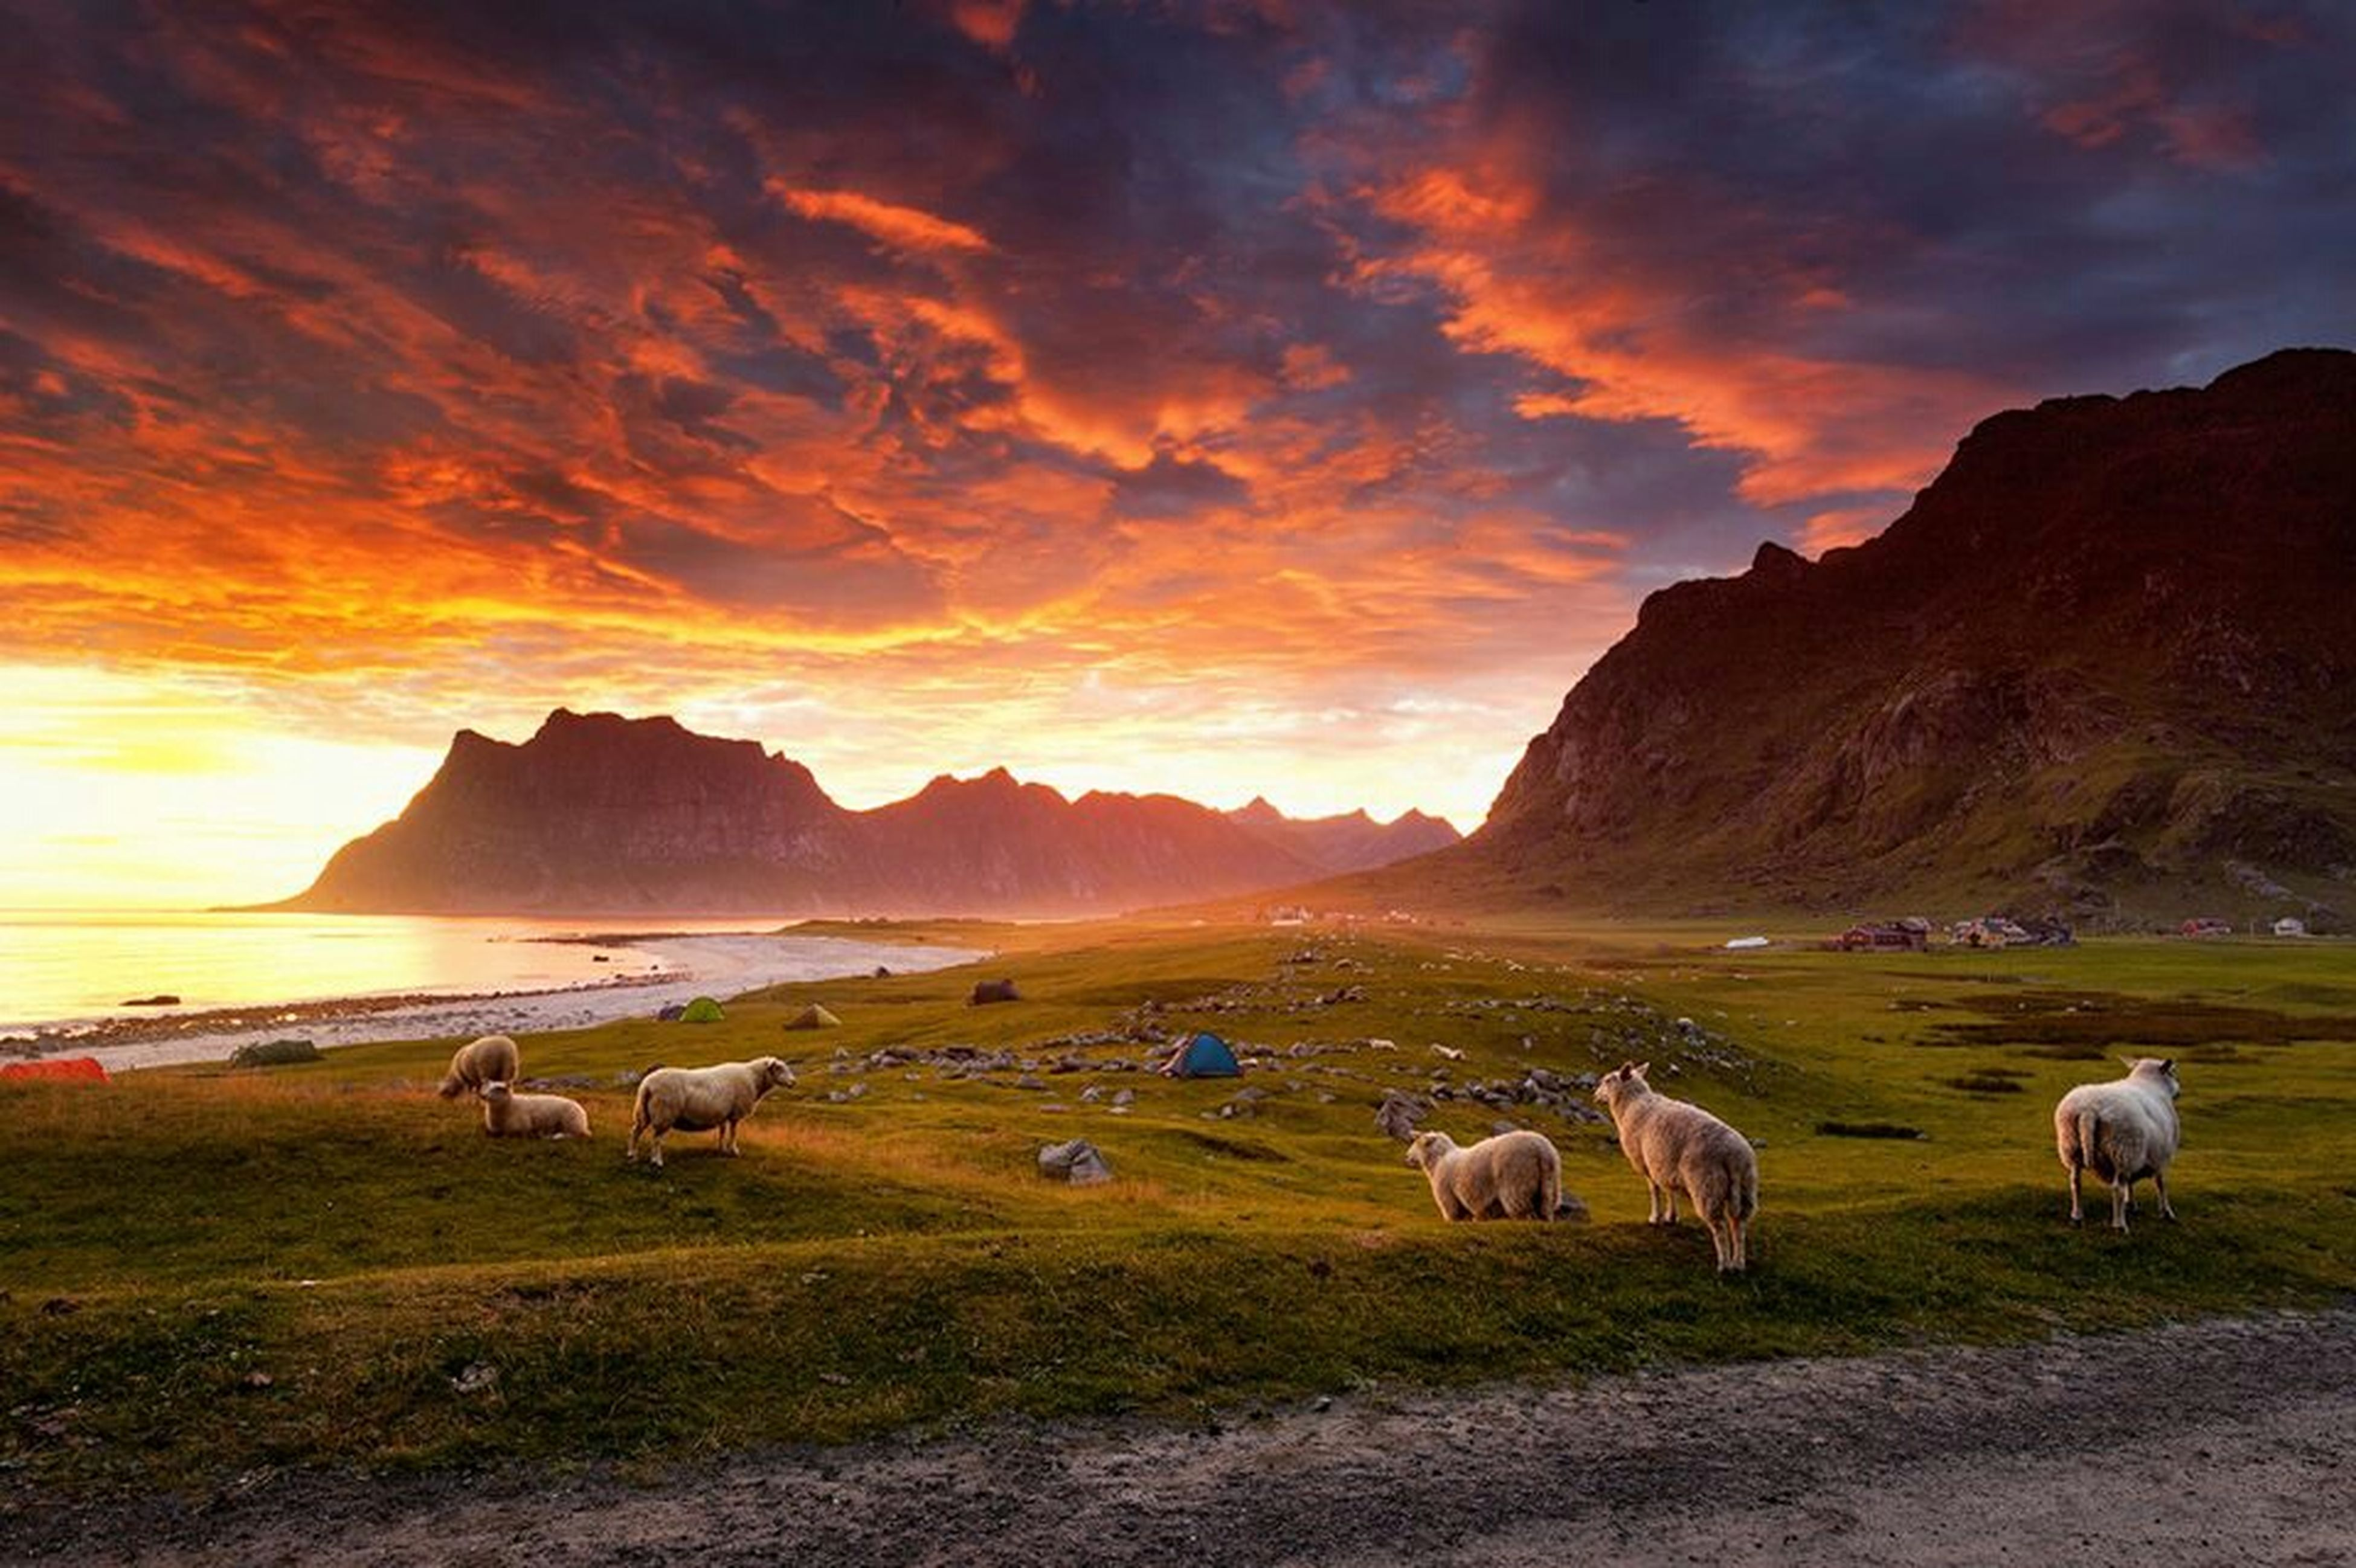 animal themes, sky, domestic animals, livestock, cloud - sky, mammal, landscape, scenics, tranquil scene, mountain, grass, sunset, nature, tranquility, beauty in nature, sheep, field, cloud, grazing, water